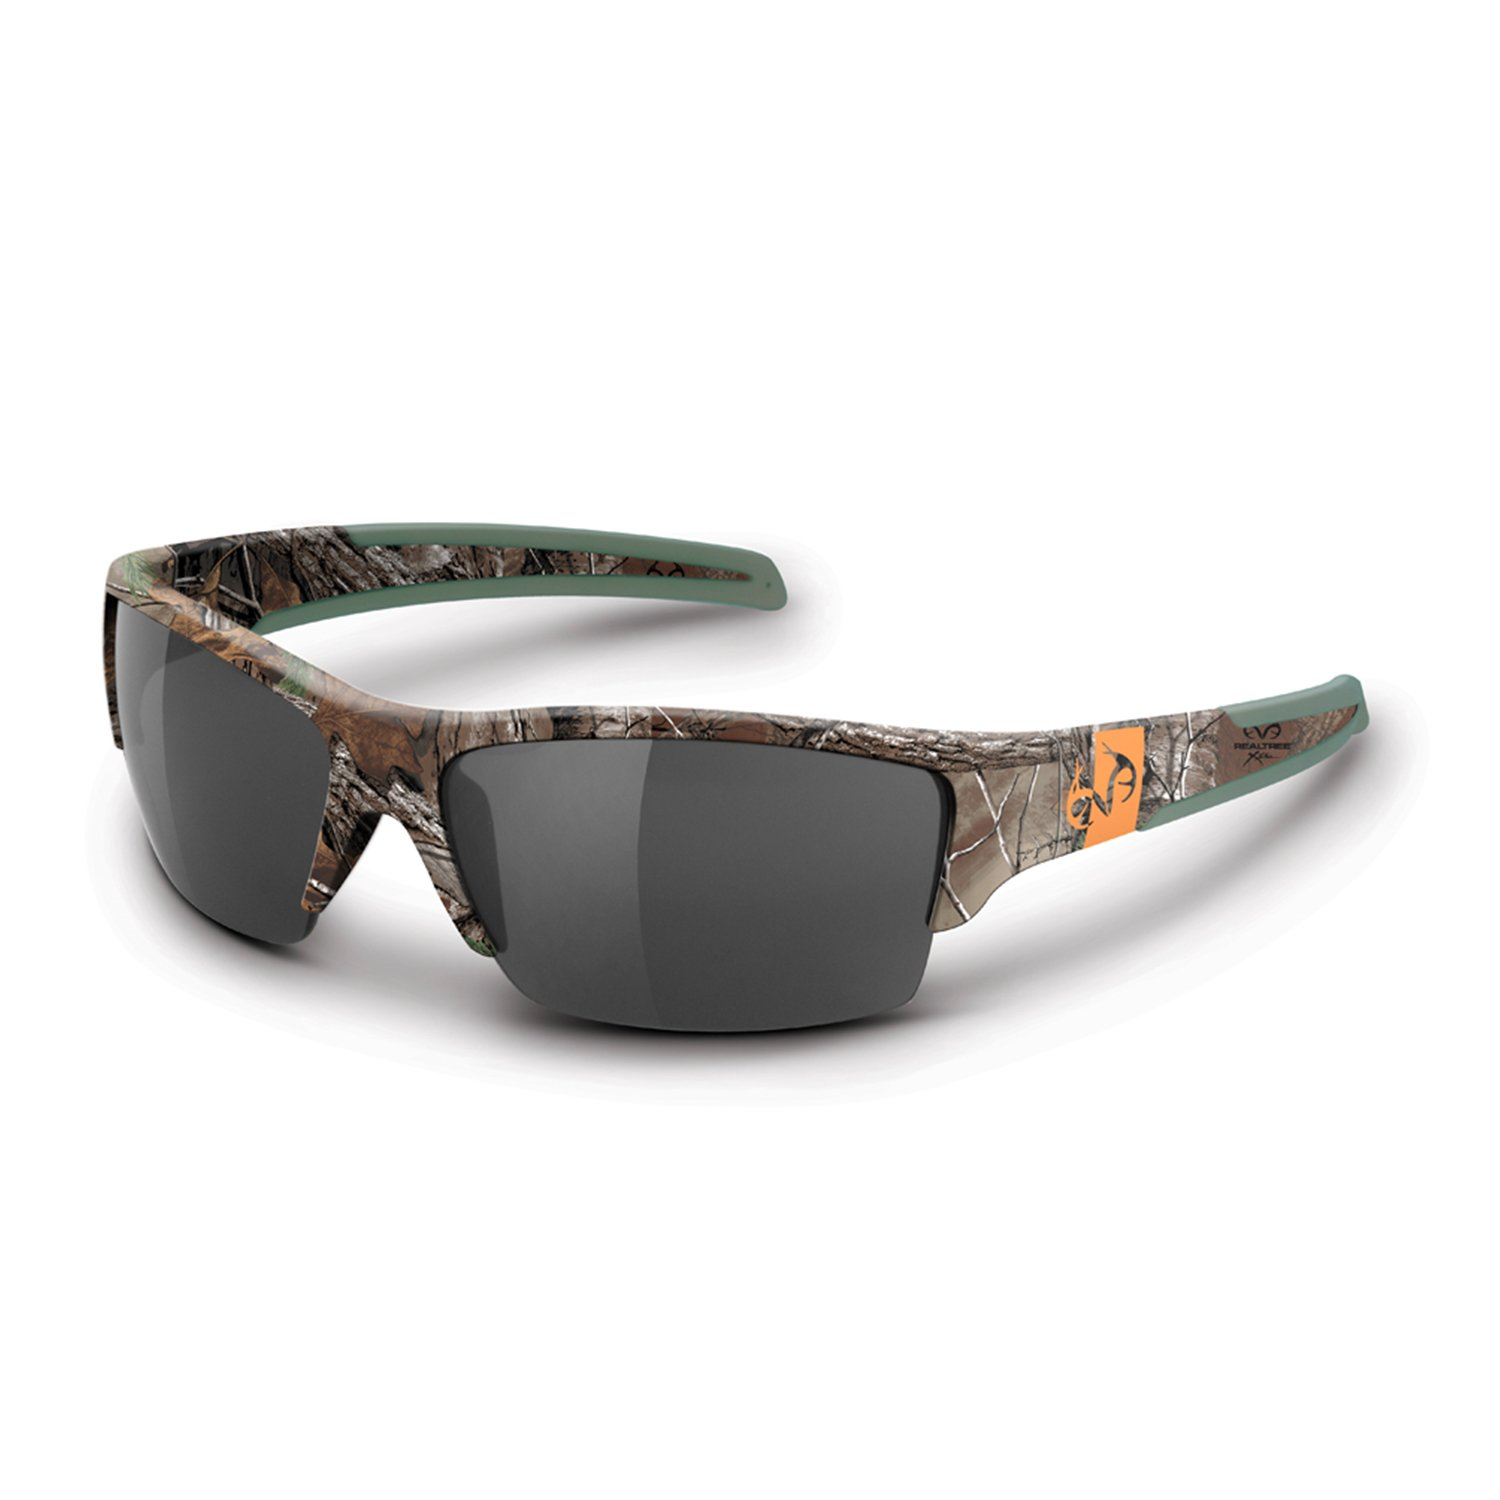 Realtree Ramrod Performance Sunglasses | Realtree Xtra Green | Polarized Smoke